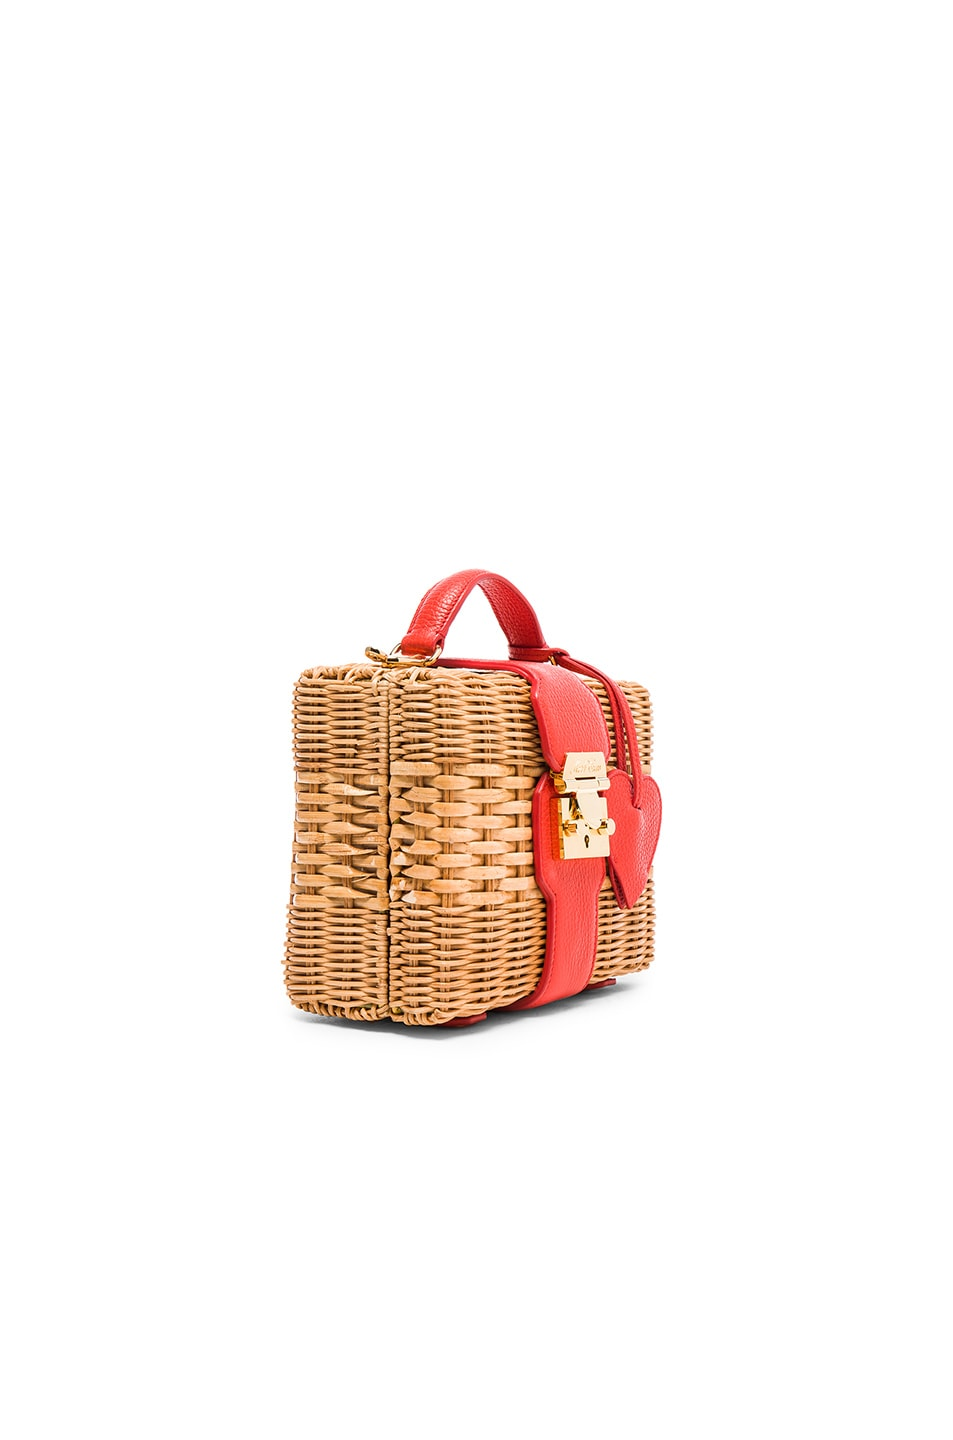 Image 4 of Mark Cross Harley Rattan Bag with Heart Charm in Bright Red Pebble